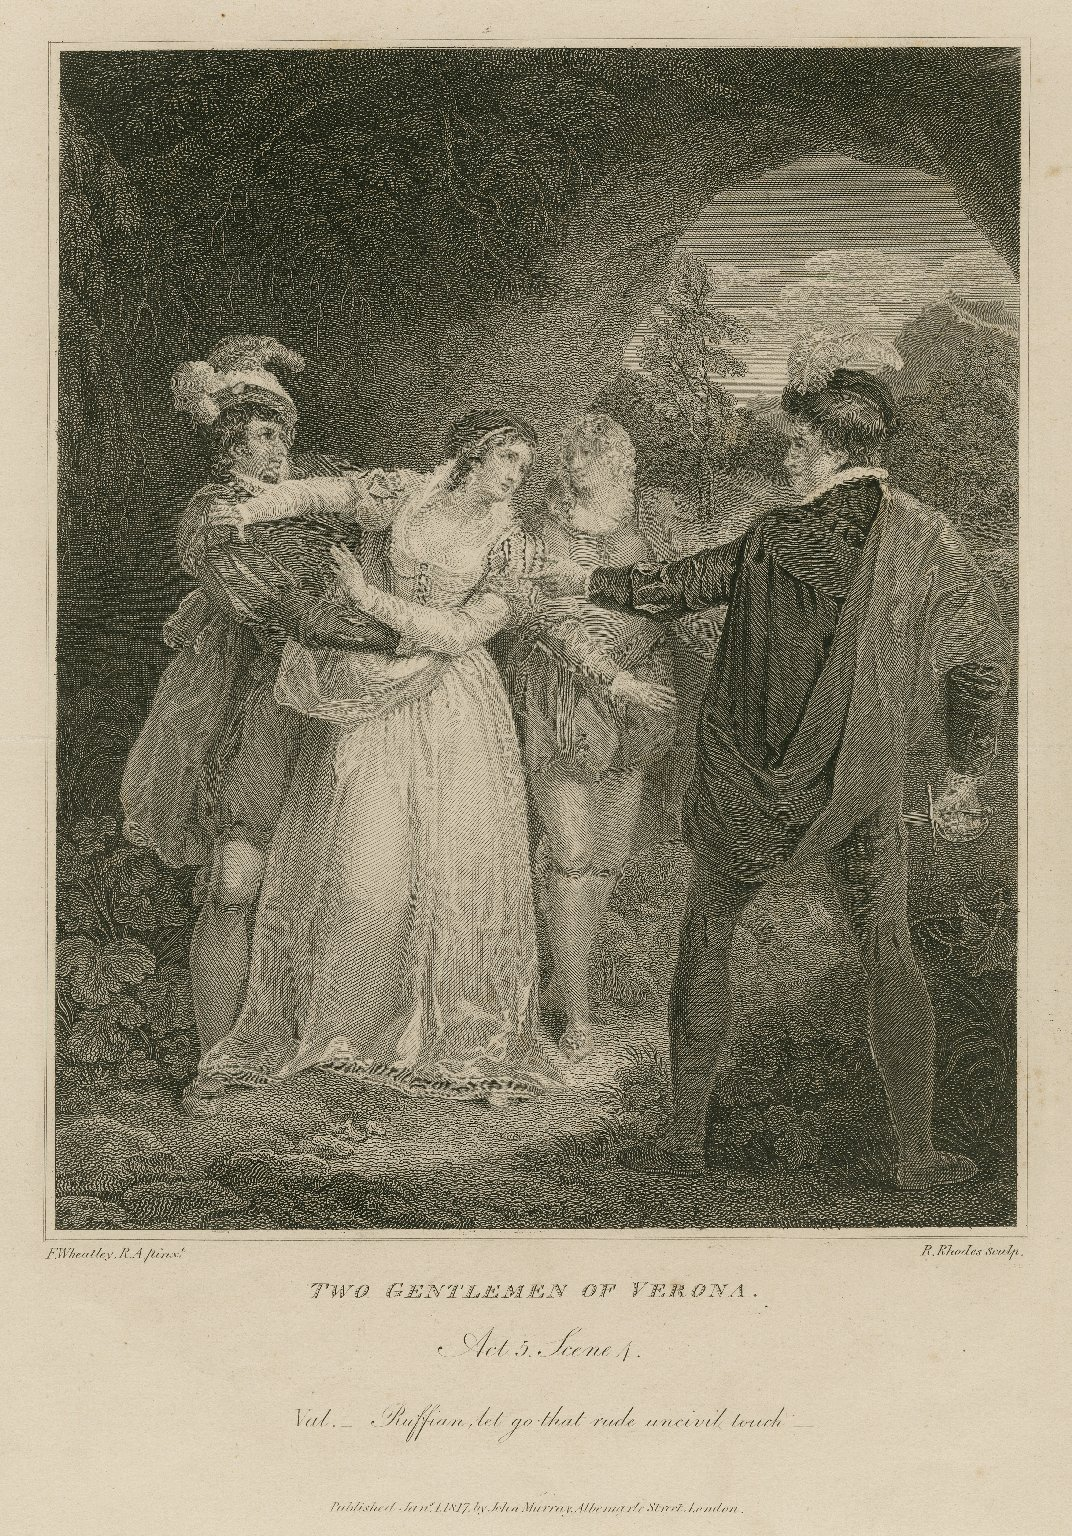 Two gentlemen of Verona, act 5, scene 4, Val.: Ruffian, let go that rude uncivil touch [graphic] / F. Wheatley, R.A. pinxt. ; R. Rhodes sculp.